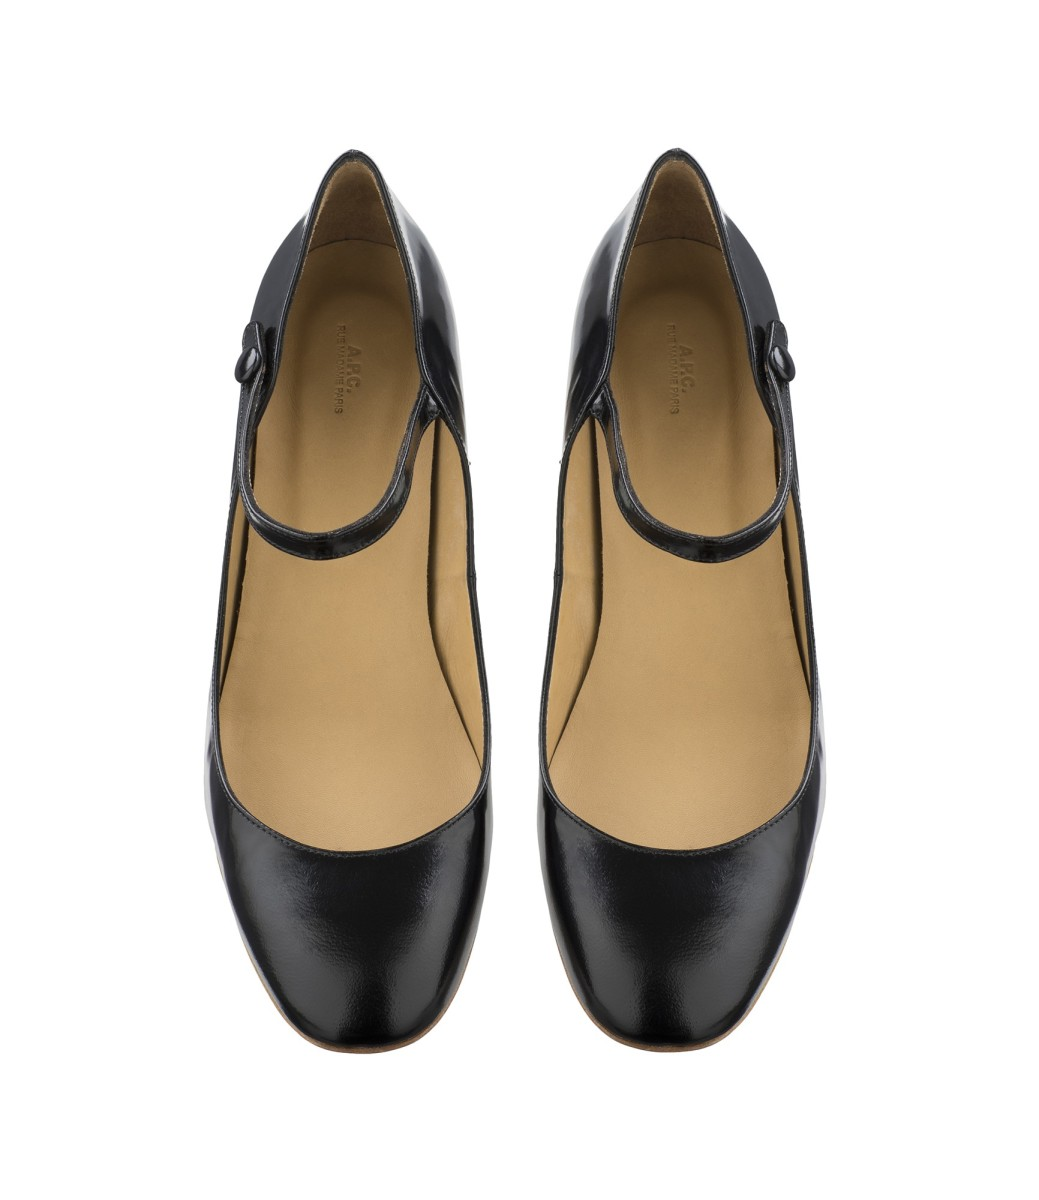 A.P.C. Jasmine shoes, $435, available at Shopbop and A.P.C.